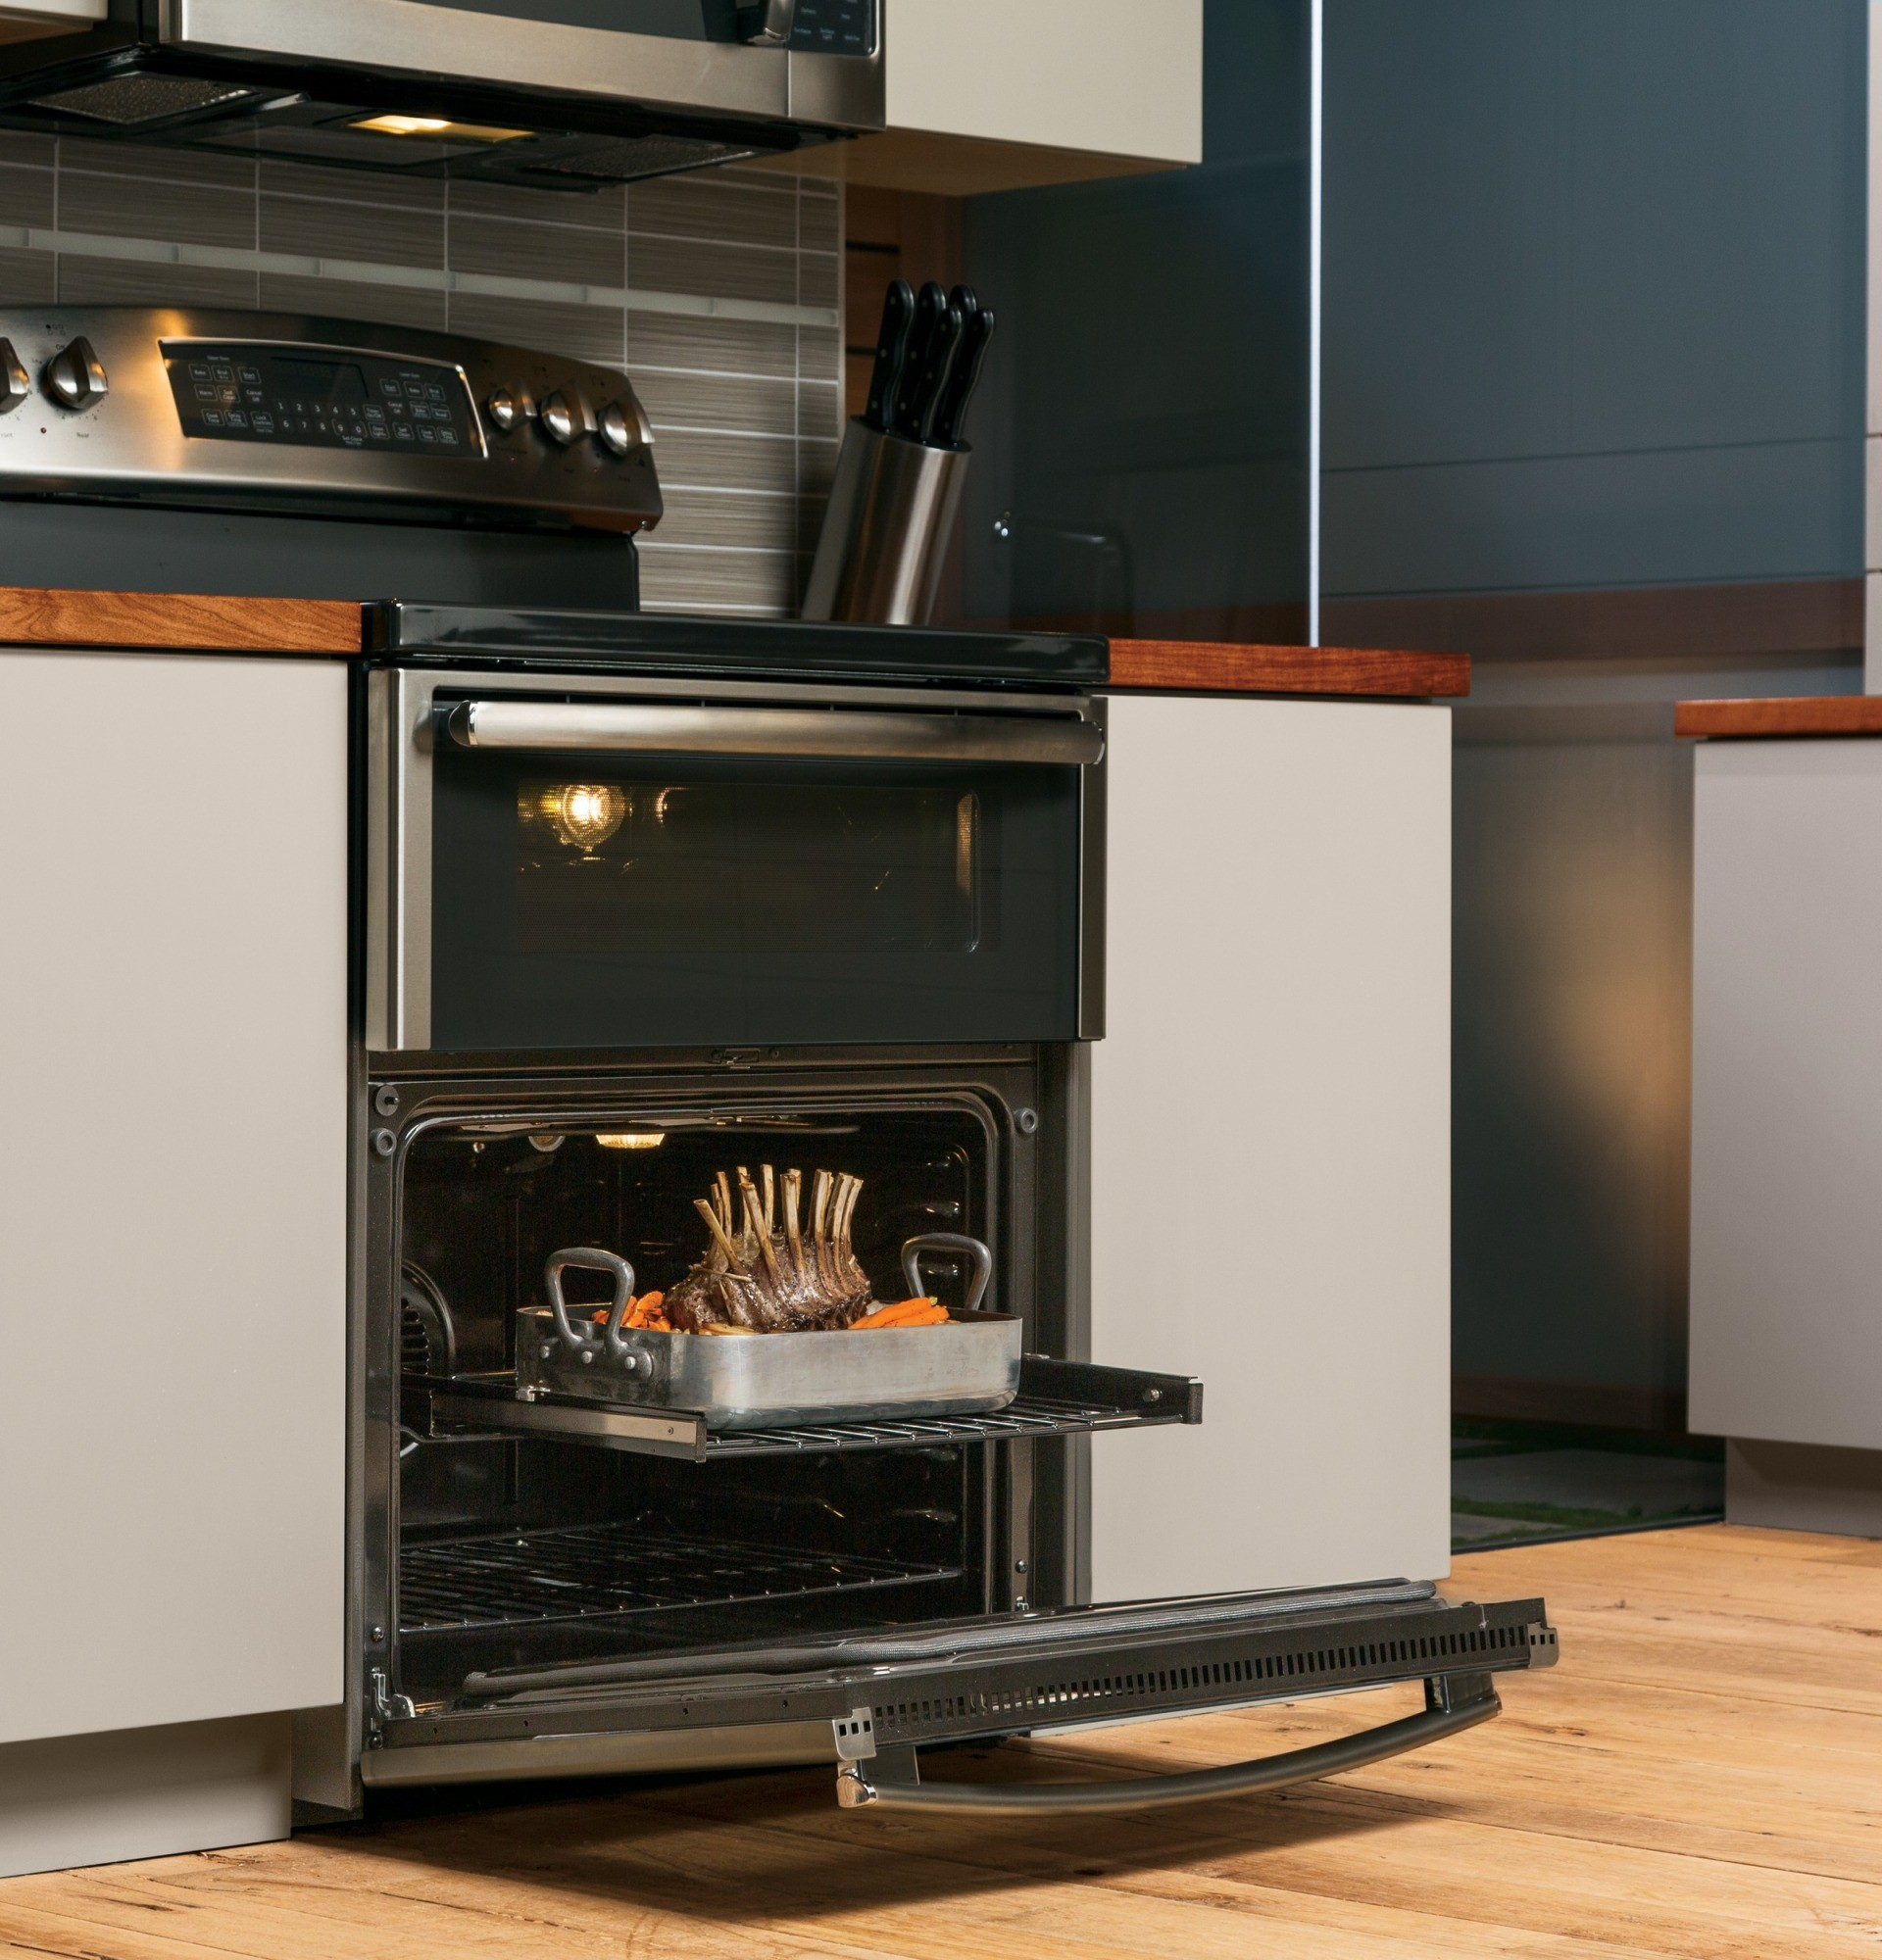 Pb950sfss Ge Profile Series 30 Quot Free Standing Double